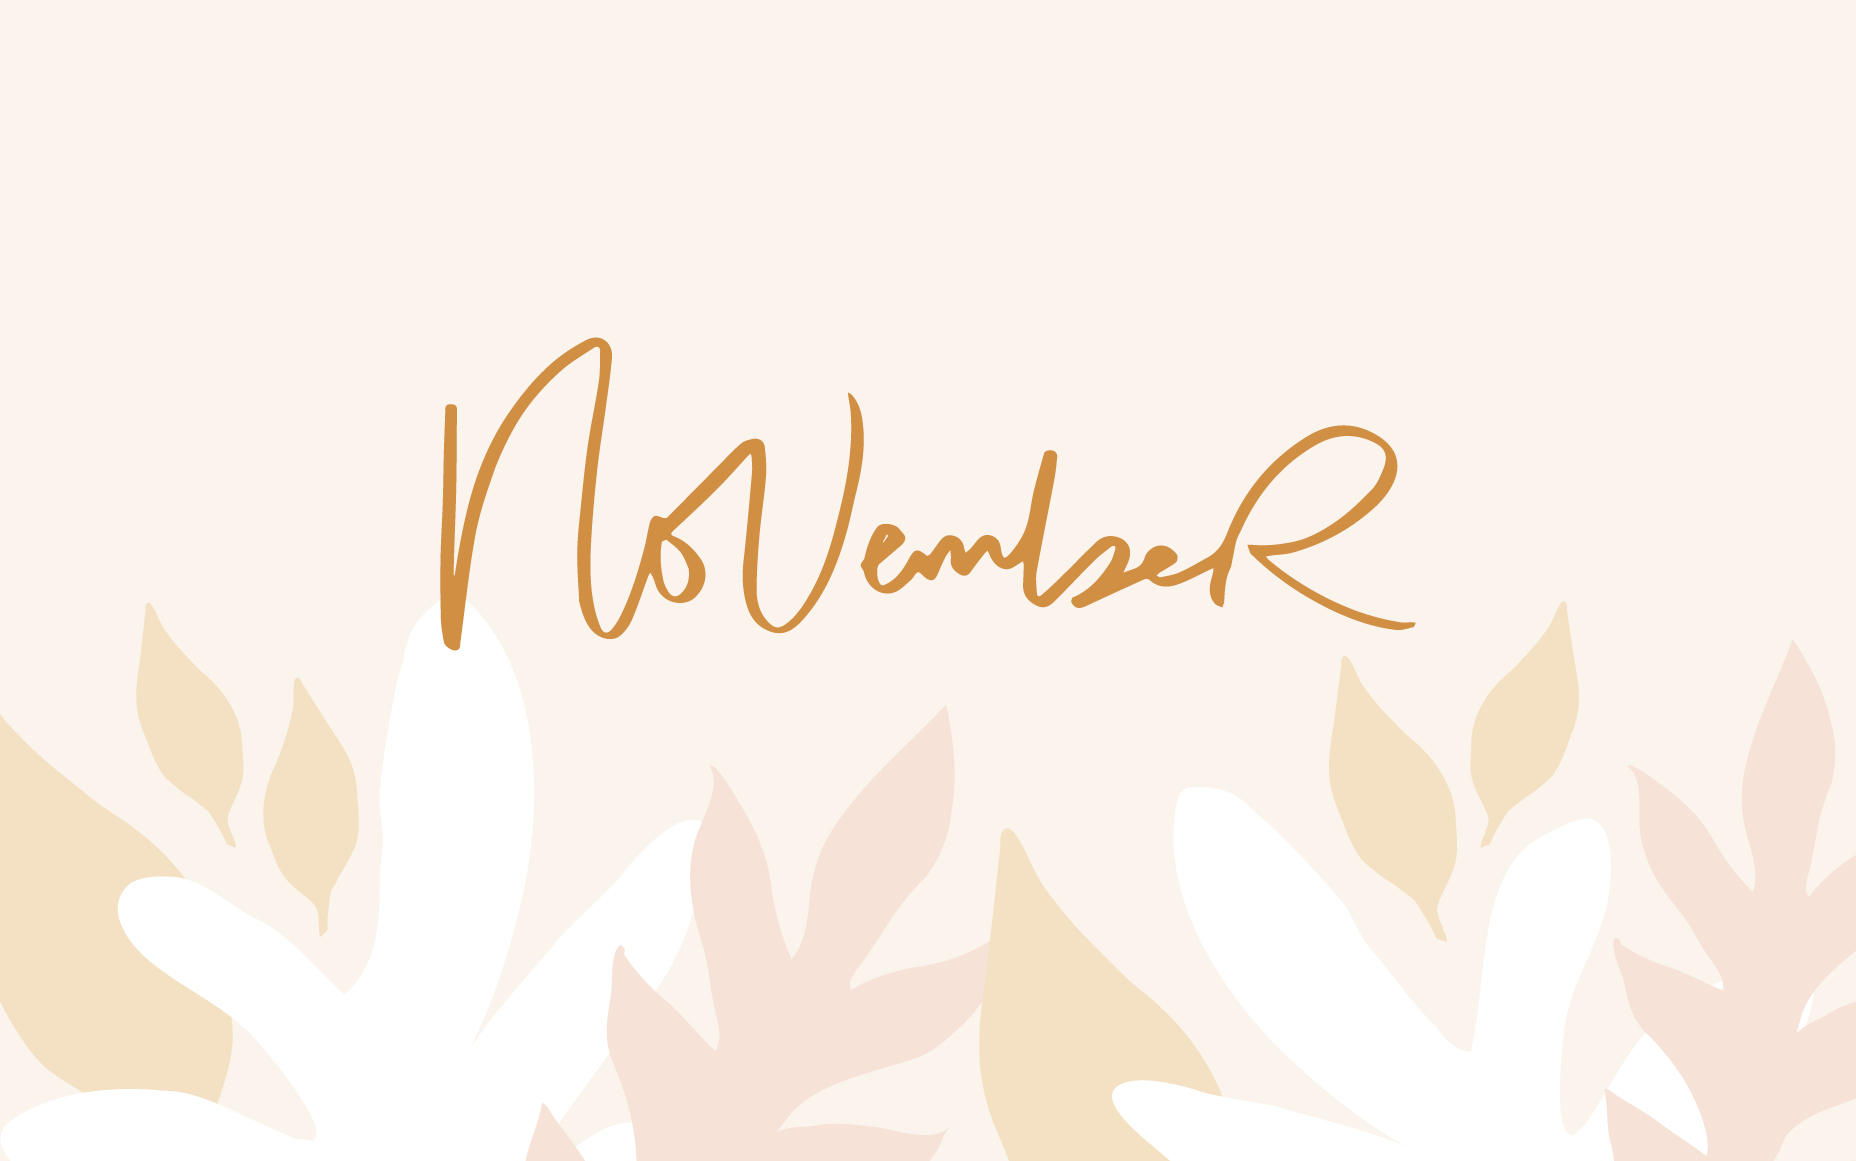 November Wallpaper Free Posted By Michelle Anderson